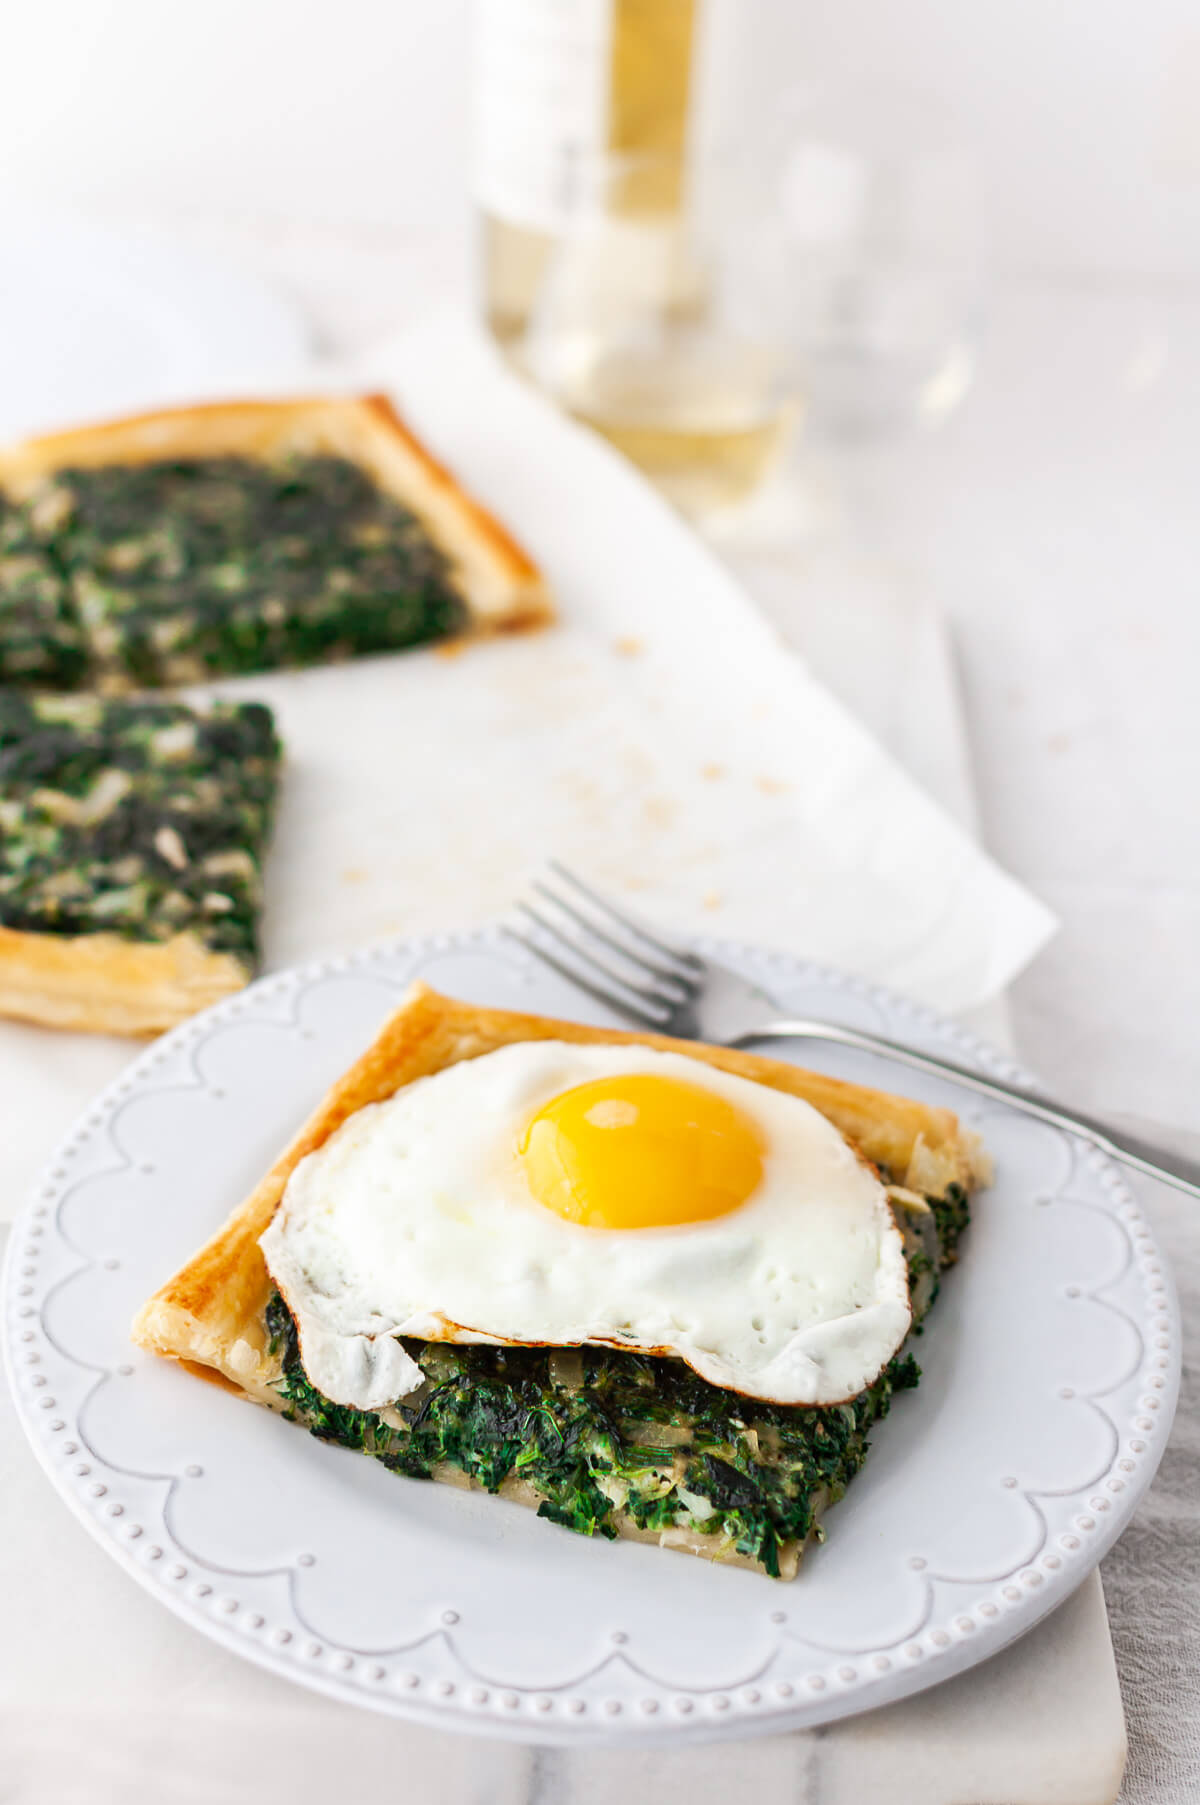 A slice of spinach tart with a fried egg on top.